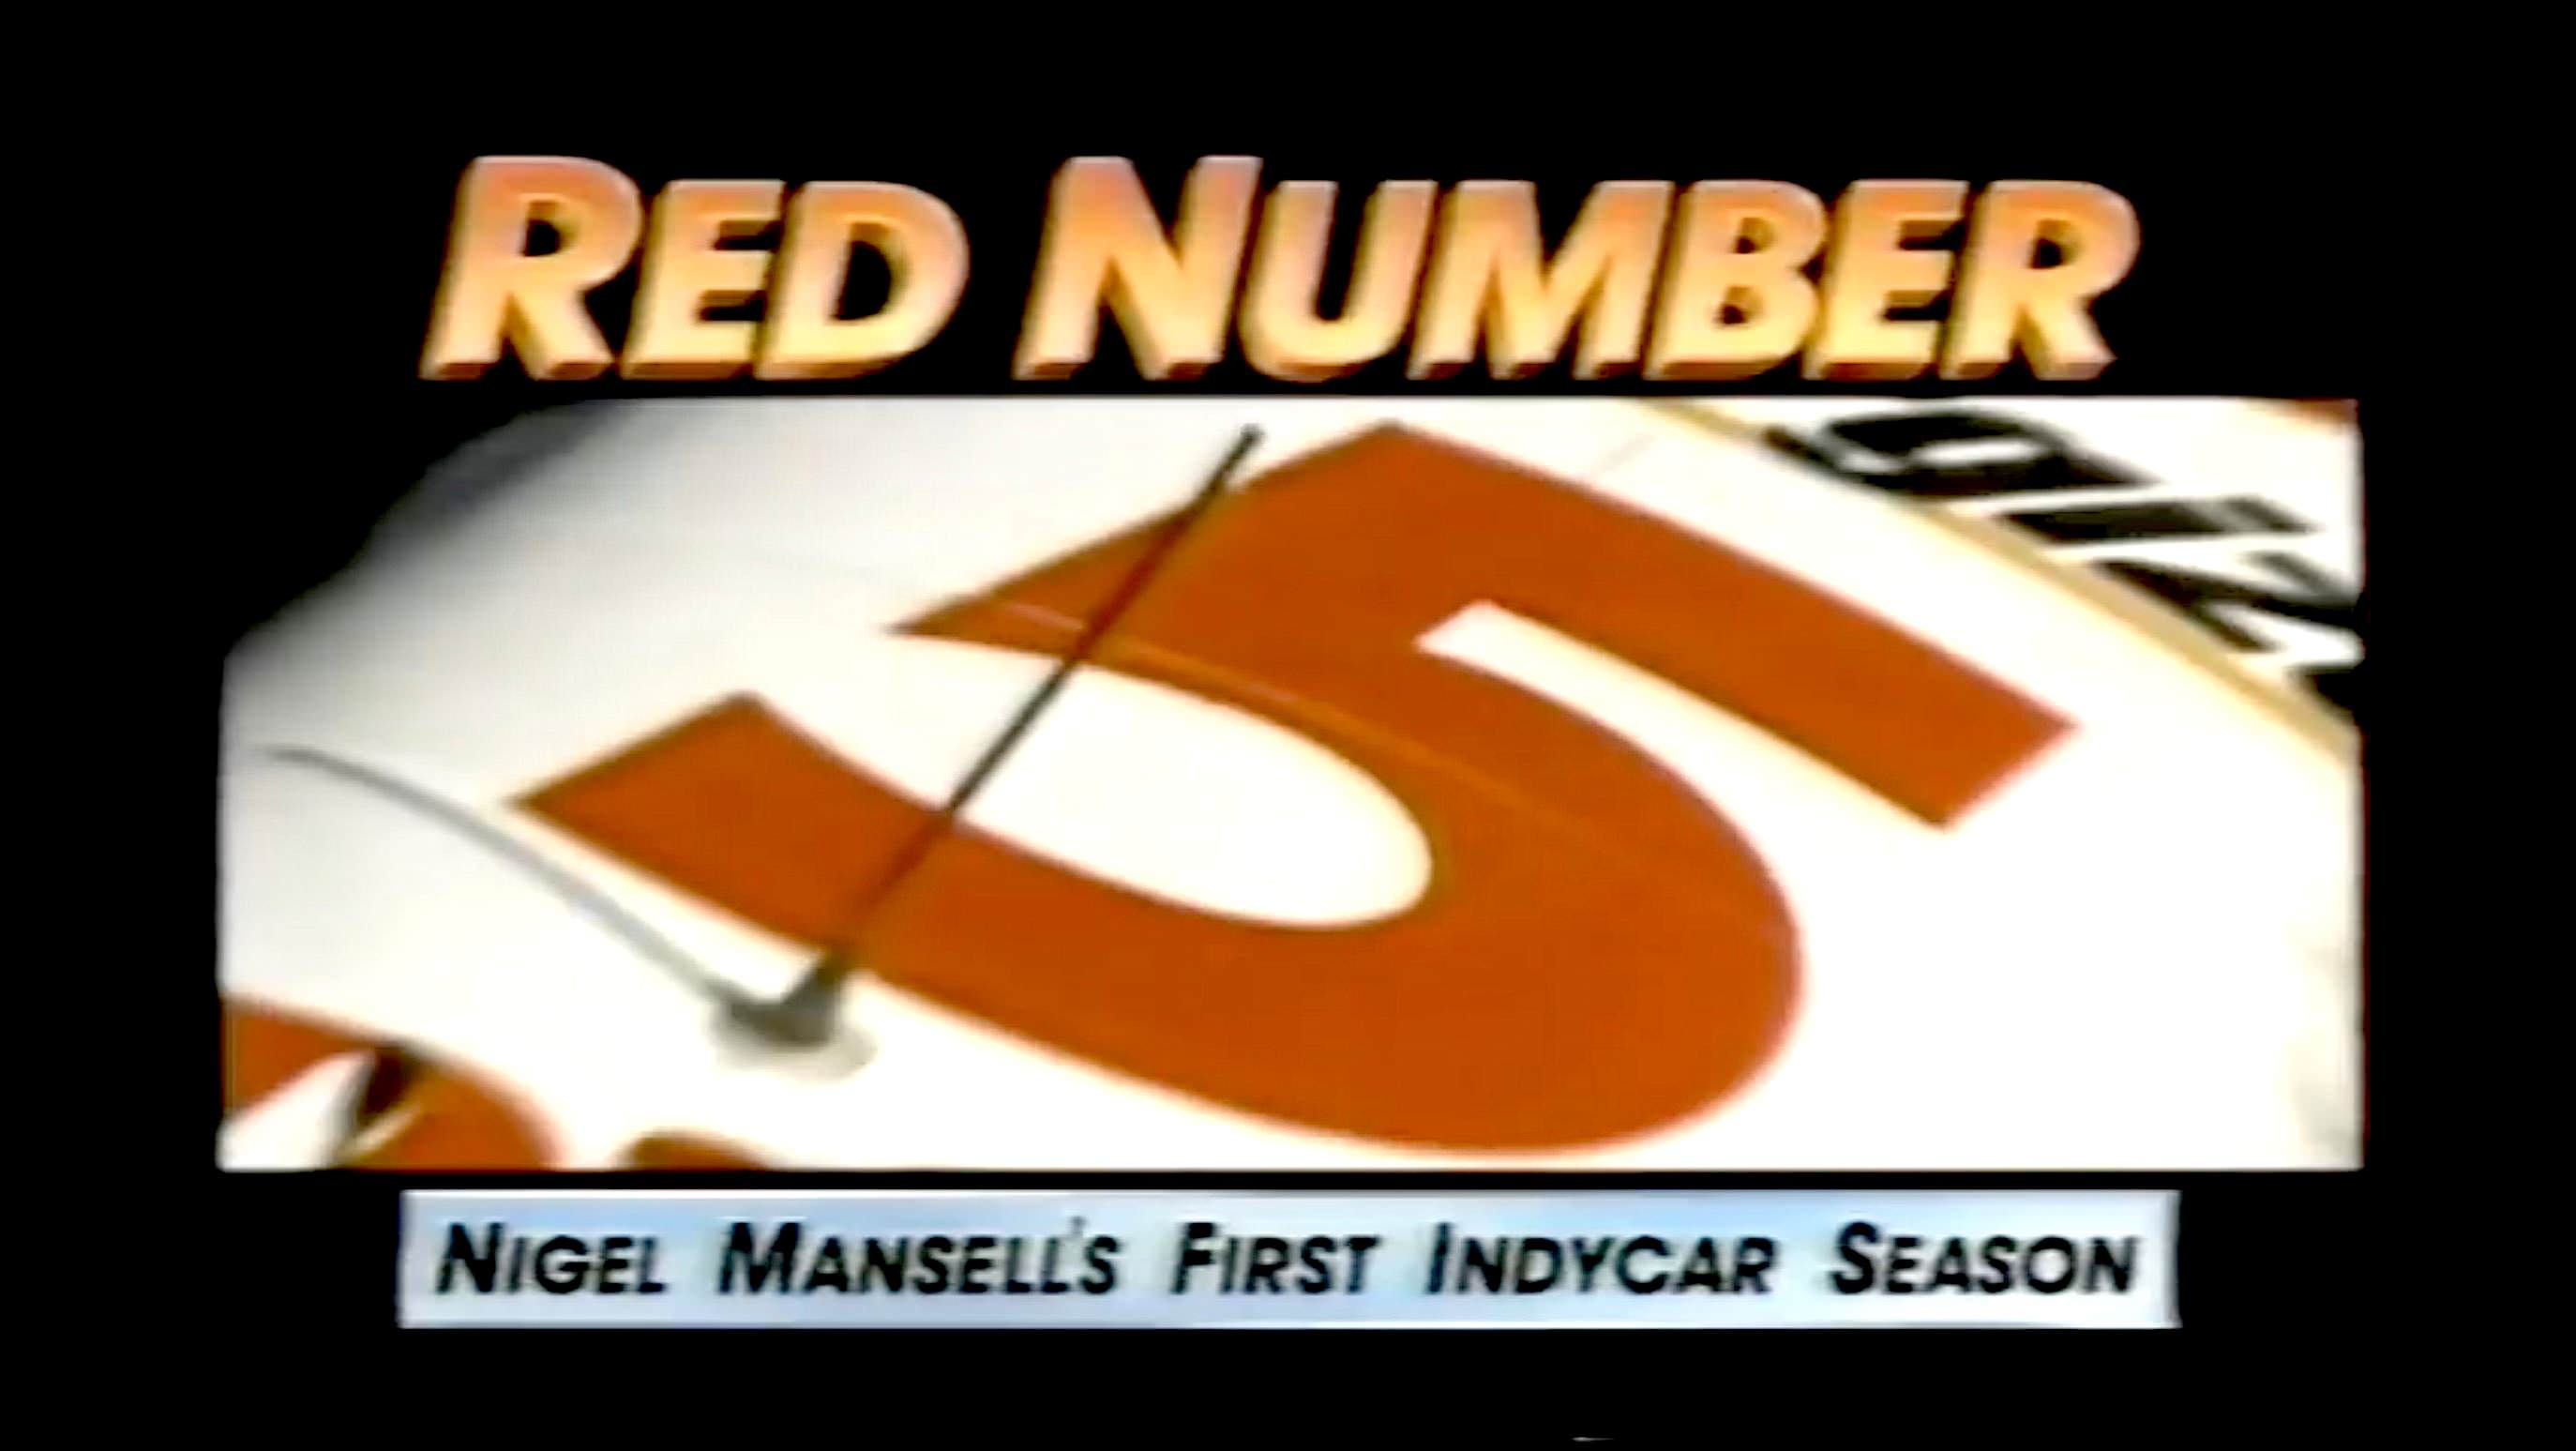 Red Number 5 - Nigel Mansell's First Indycar Season